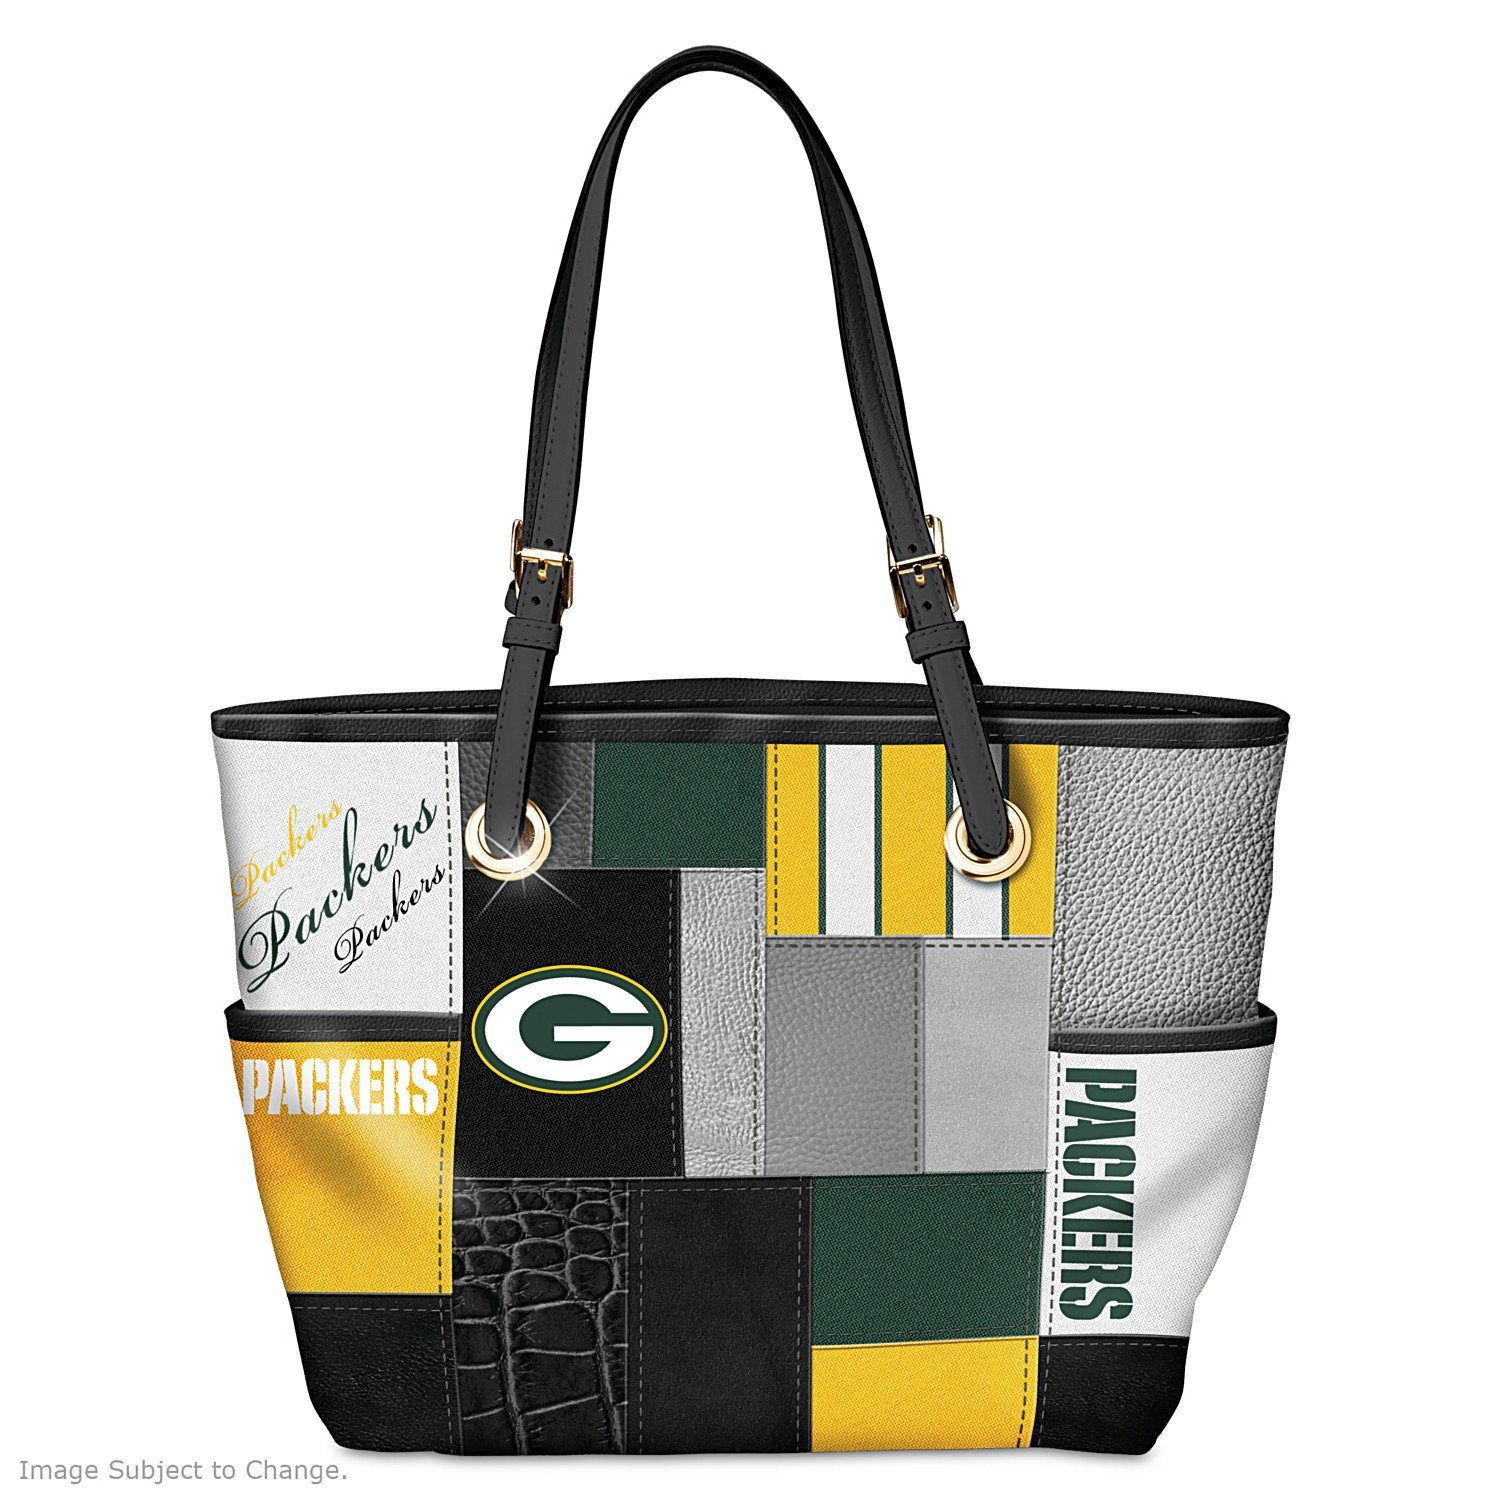 For The Love Of The Game NFL Green Bay Packers Tote Bag by The Bradford Exchange